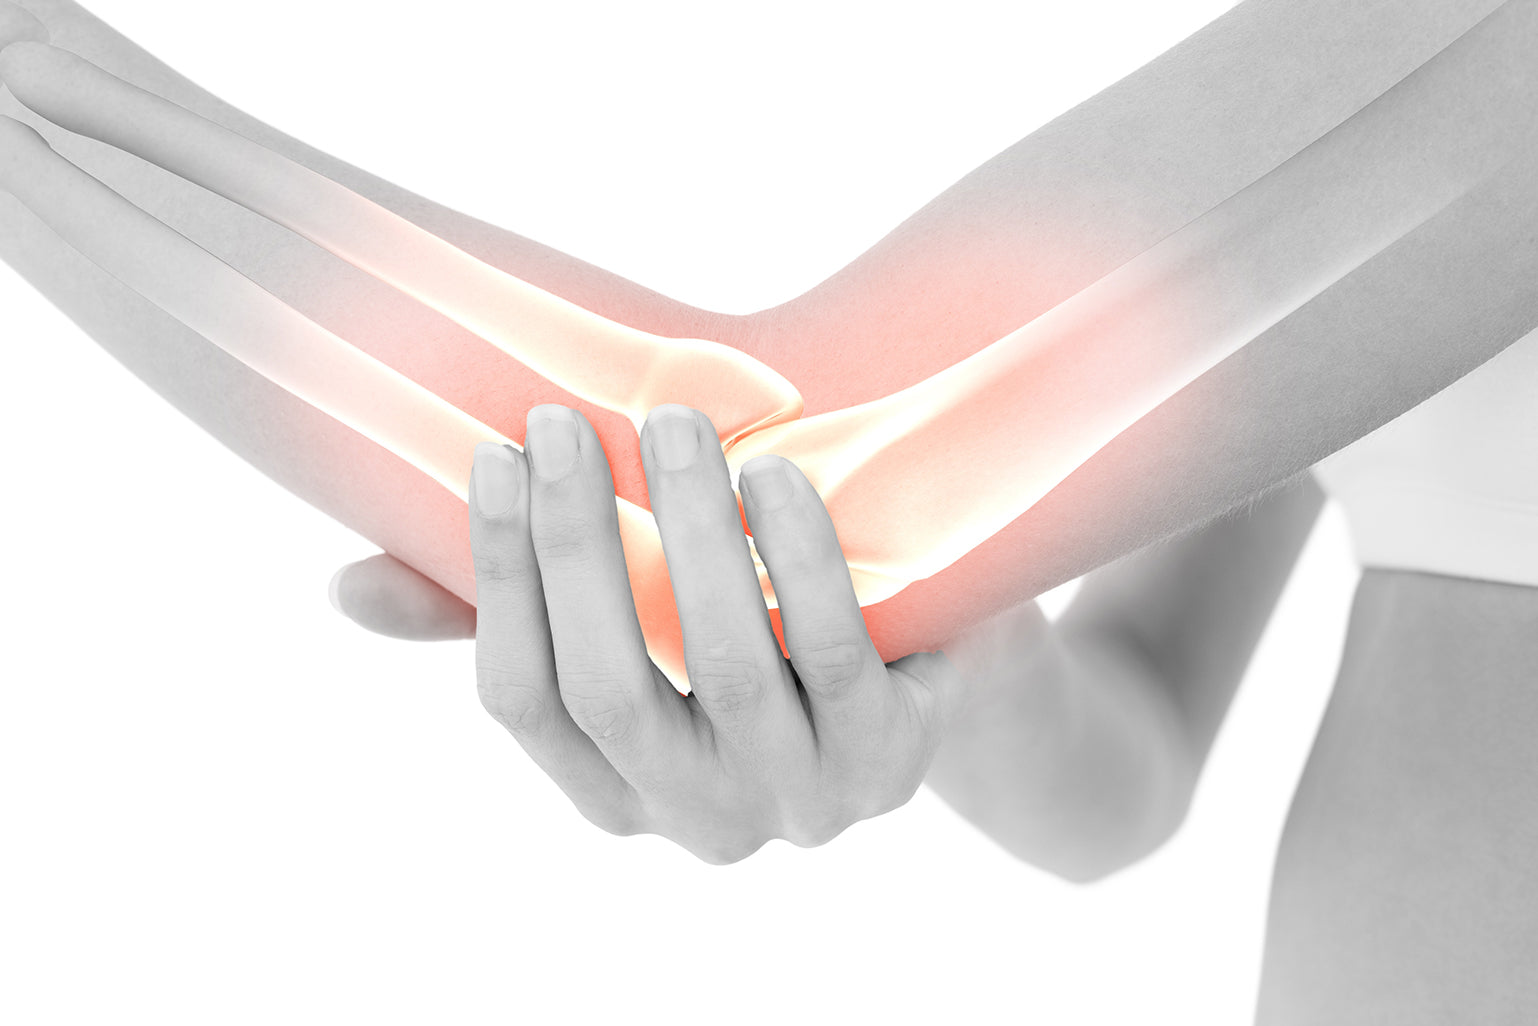 Image of a person holding their elbow joint